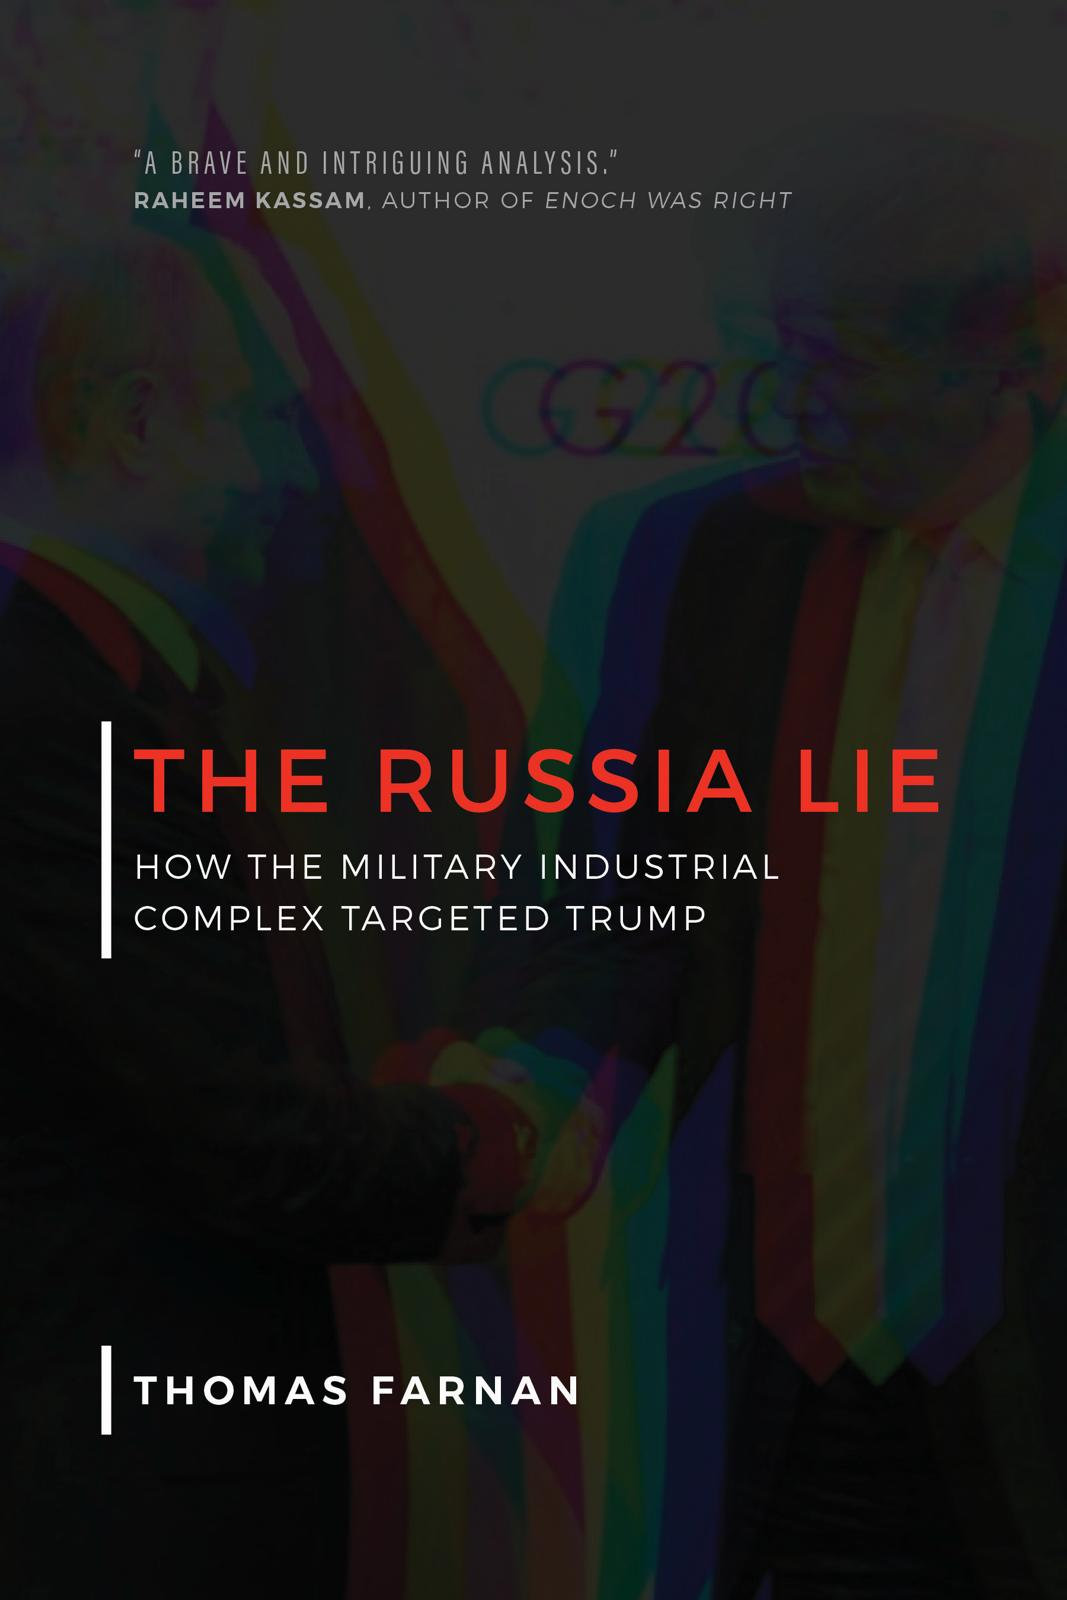 THE RUSSIA LIE